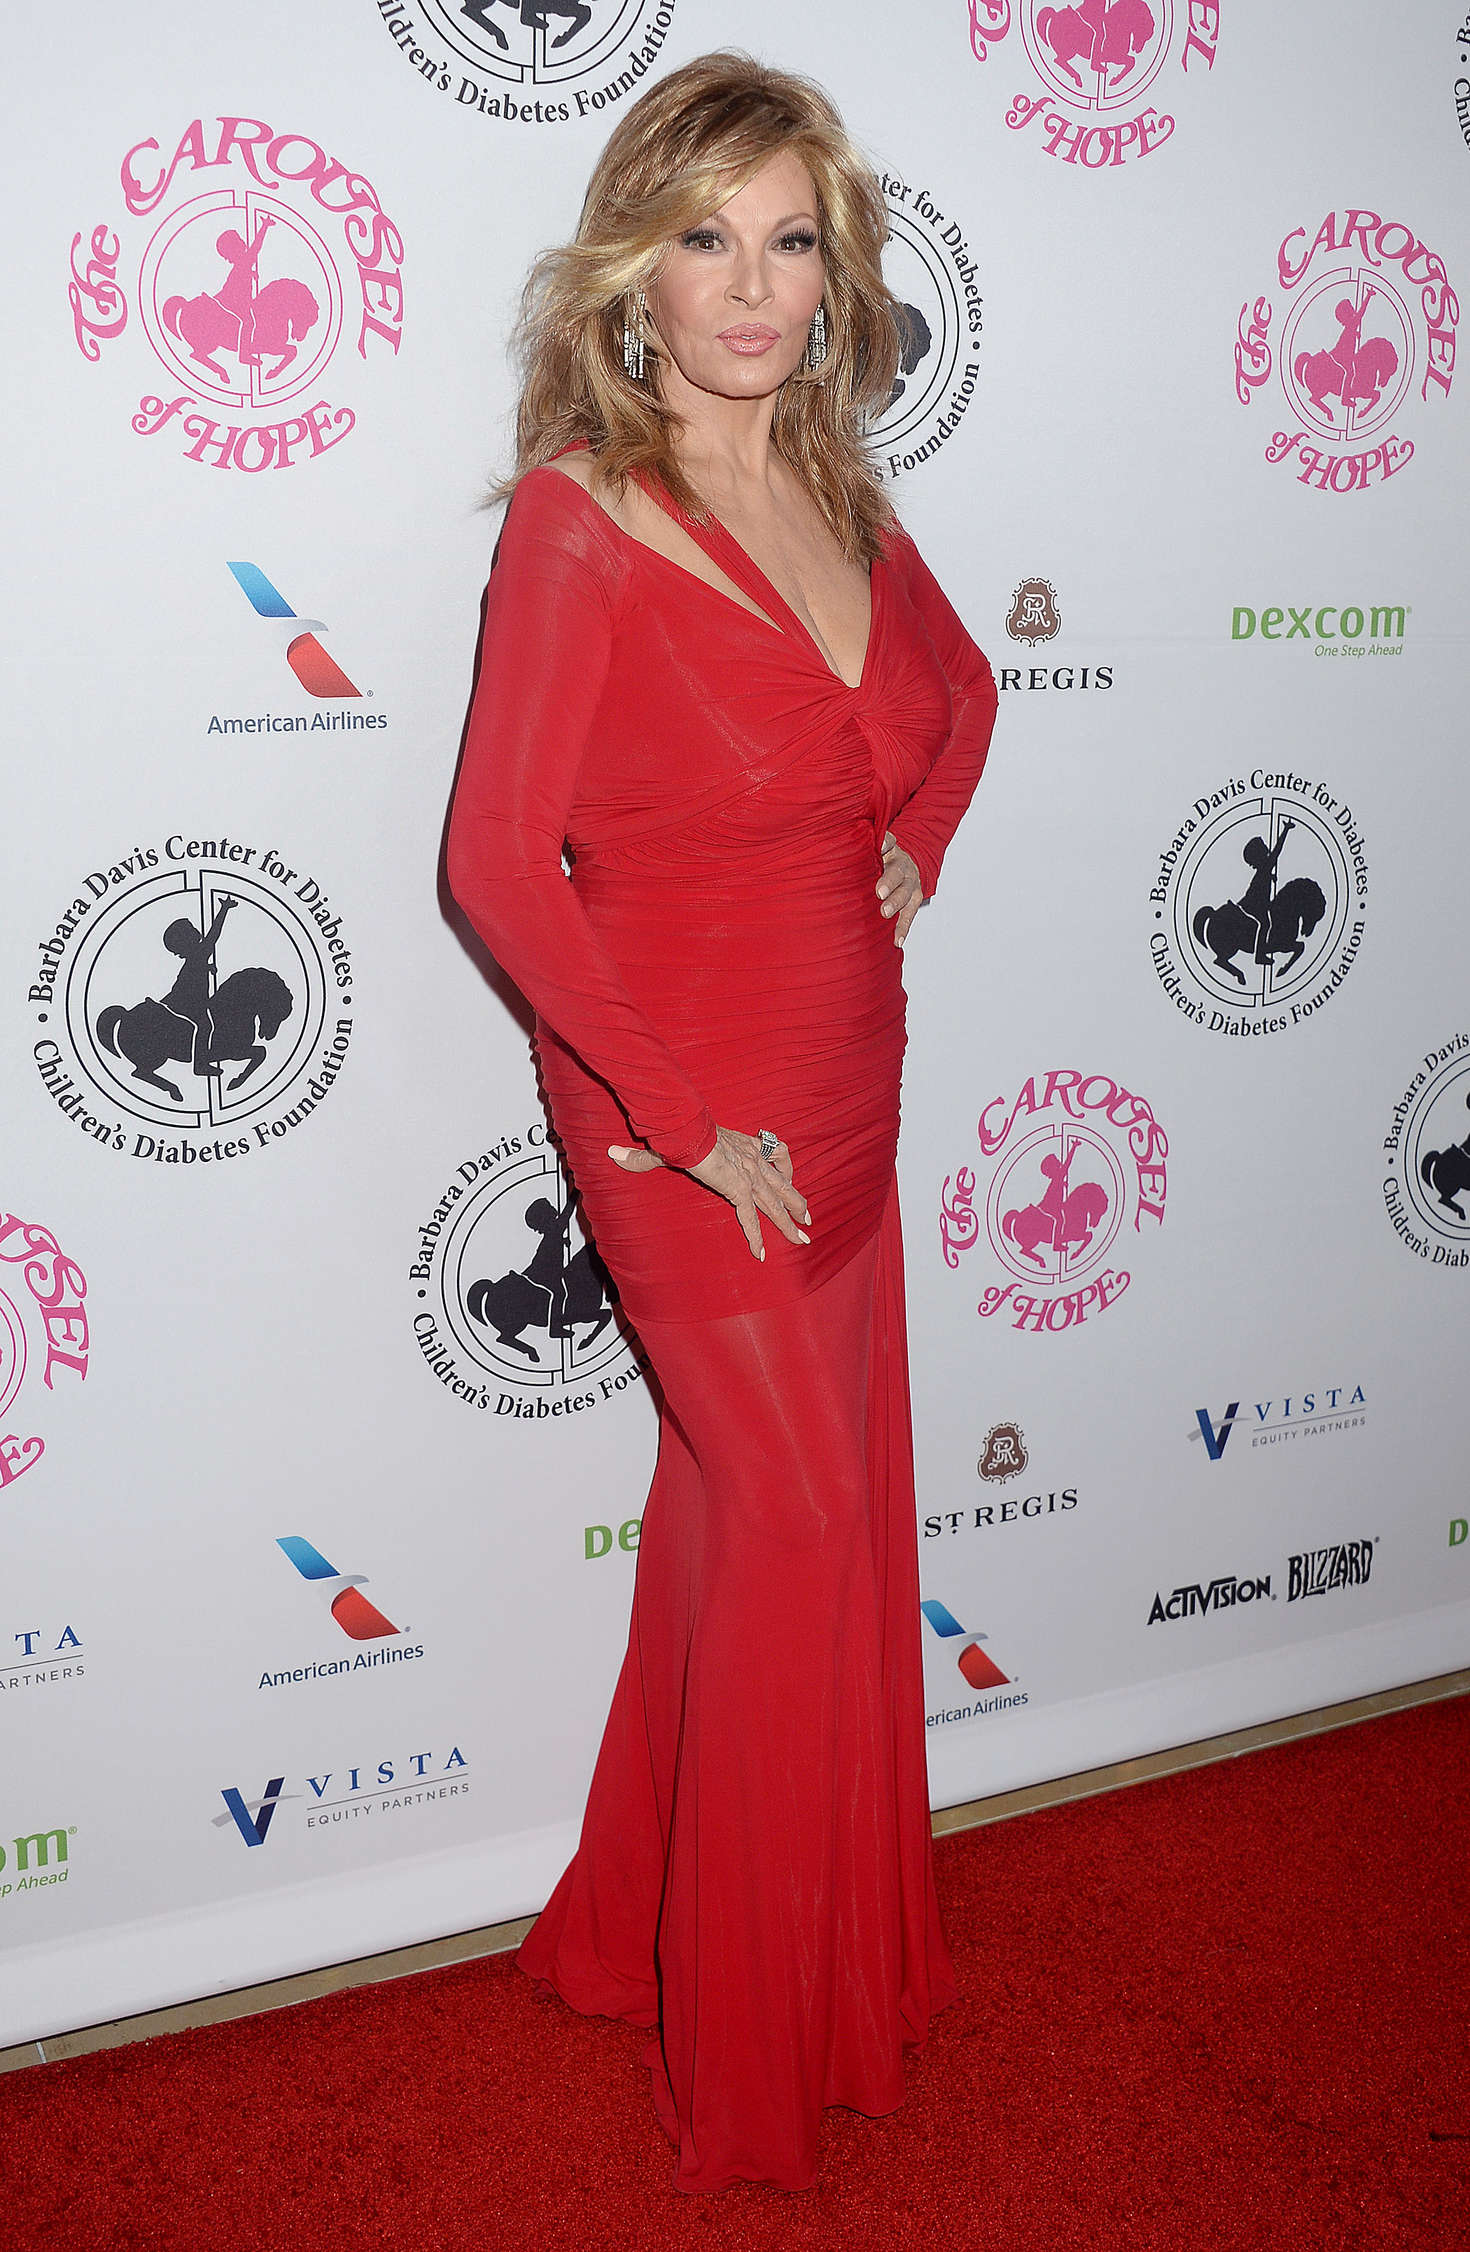 Raquel Welch – Carousel of Hope Ball 2016 in Beverly Hills_02